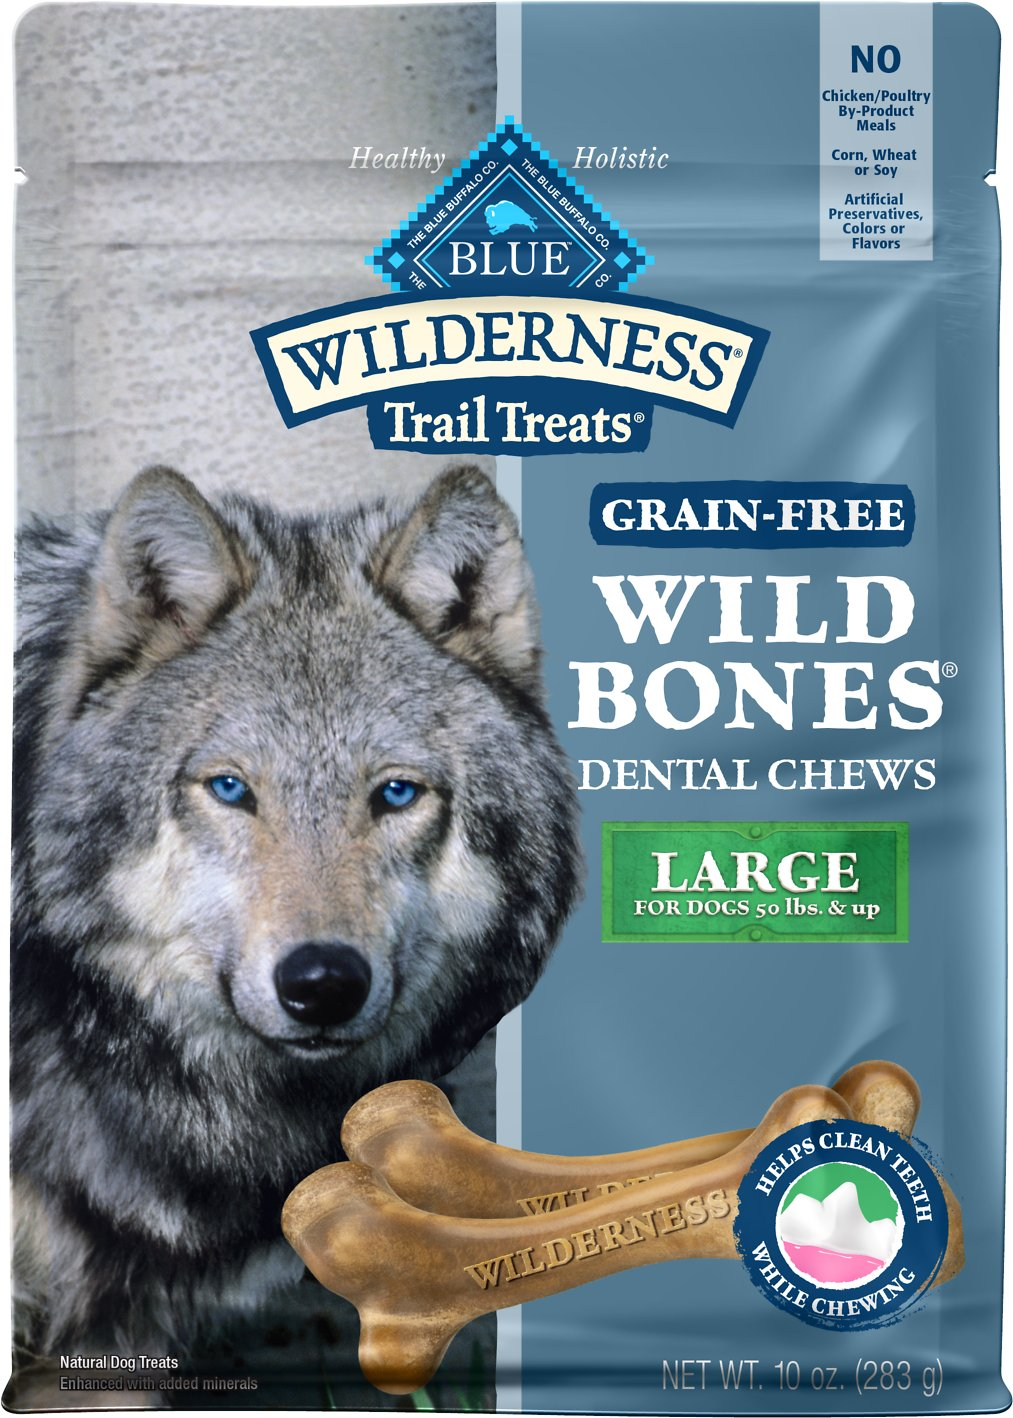 Wolf Heart Dog Food Reviews